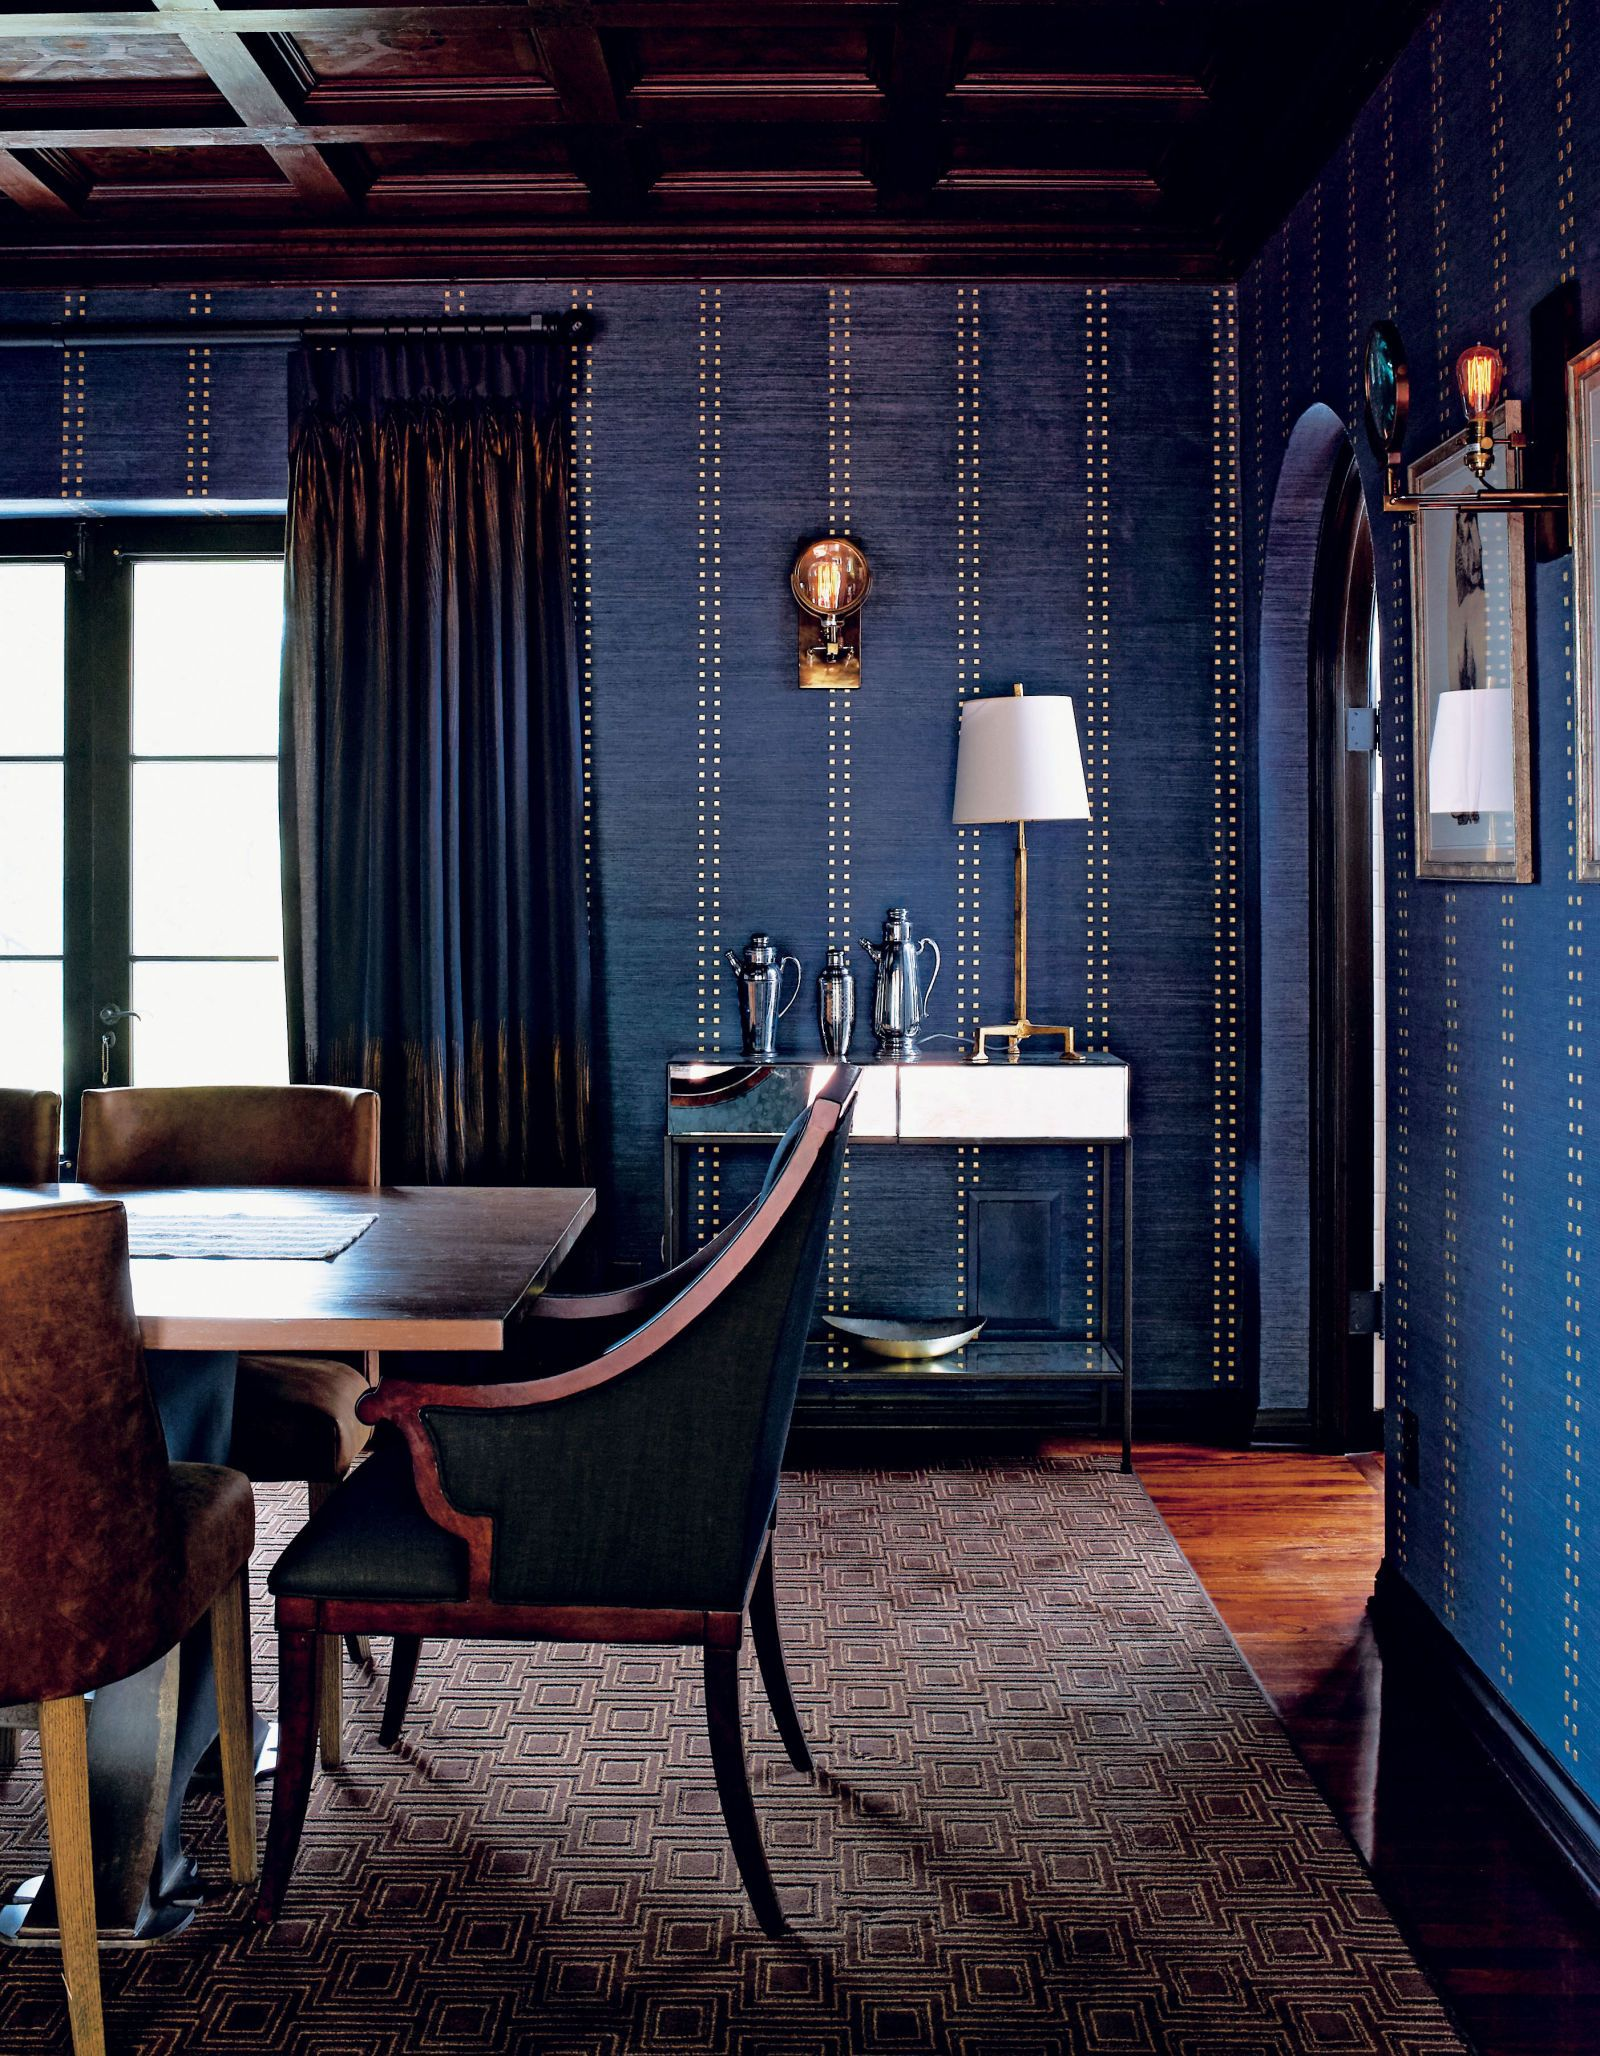 Zodiac - Die Andere Küche Essen 8 Ingredients For A Hollywood Chic Home Dining Rooms Pinterest